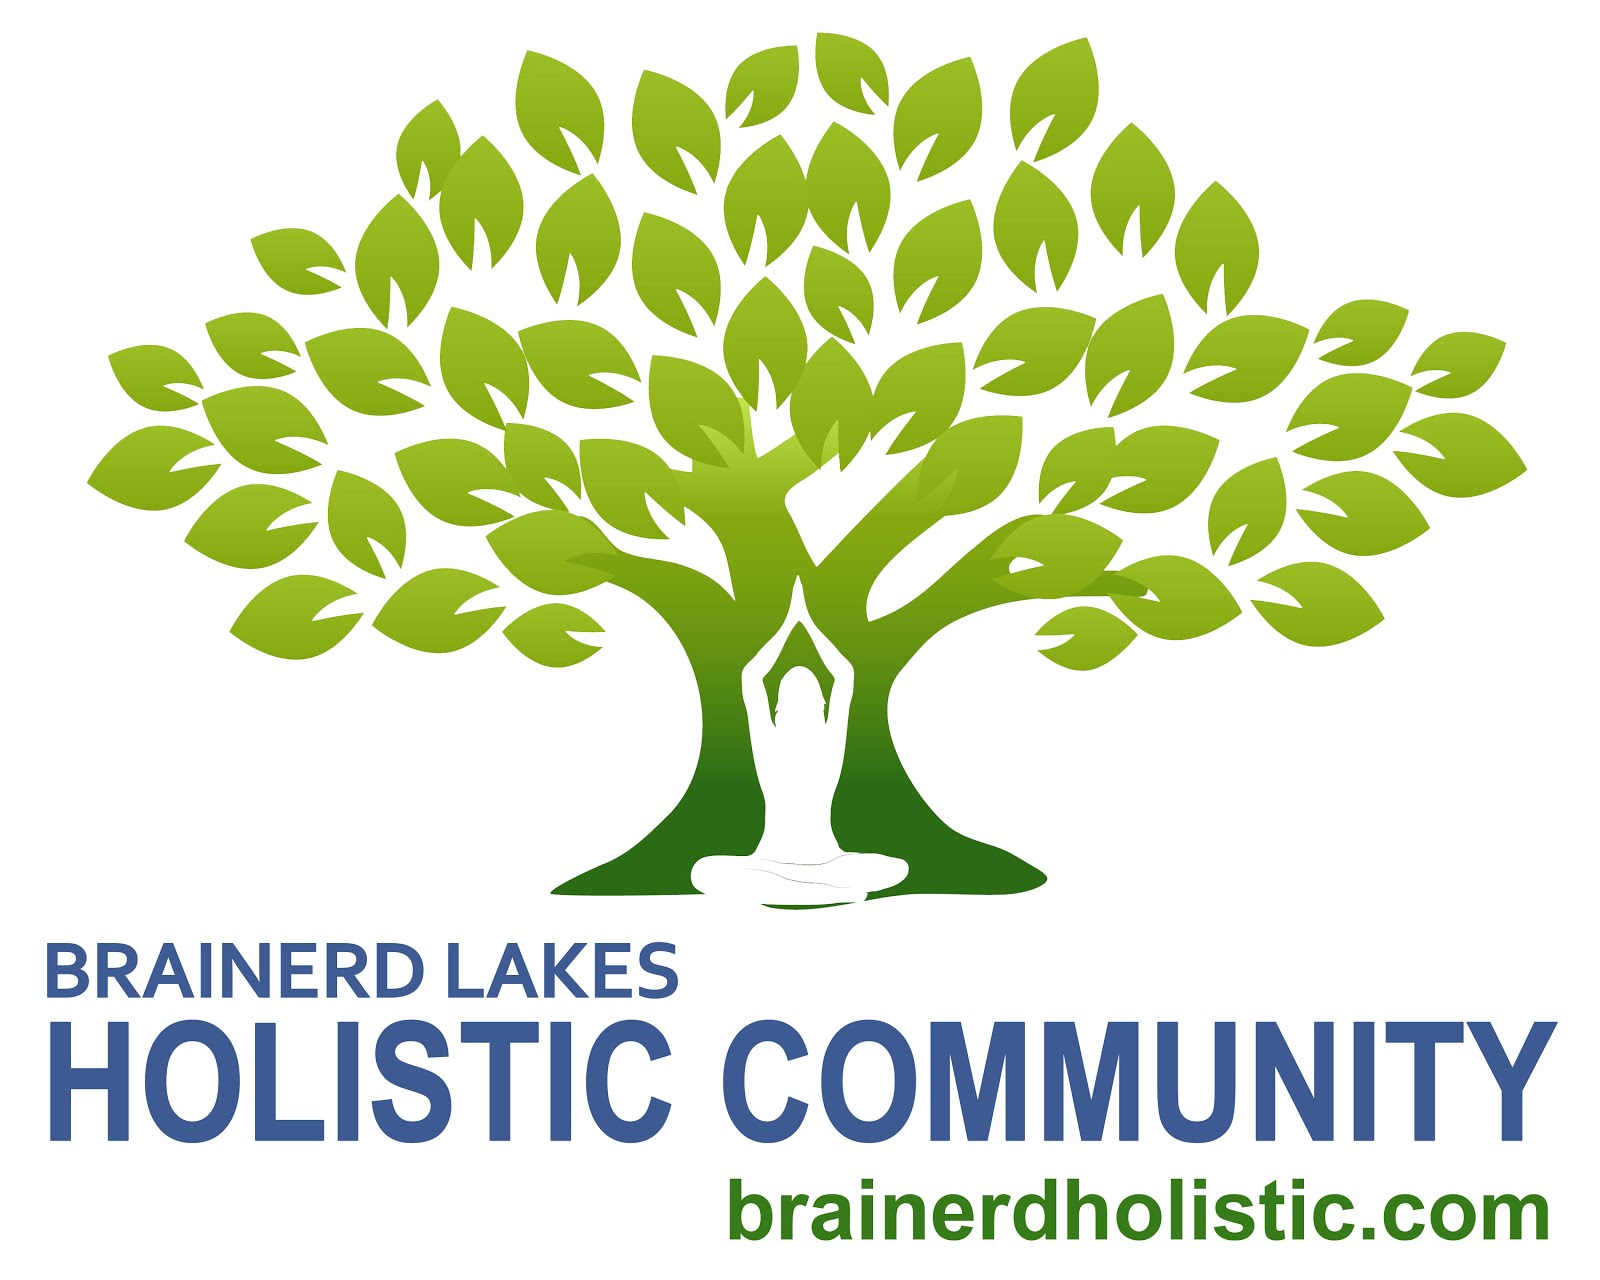 Brainerd Lakes Holistic Community